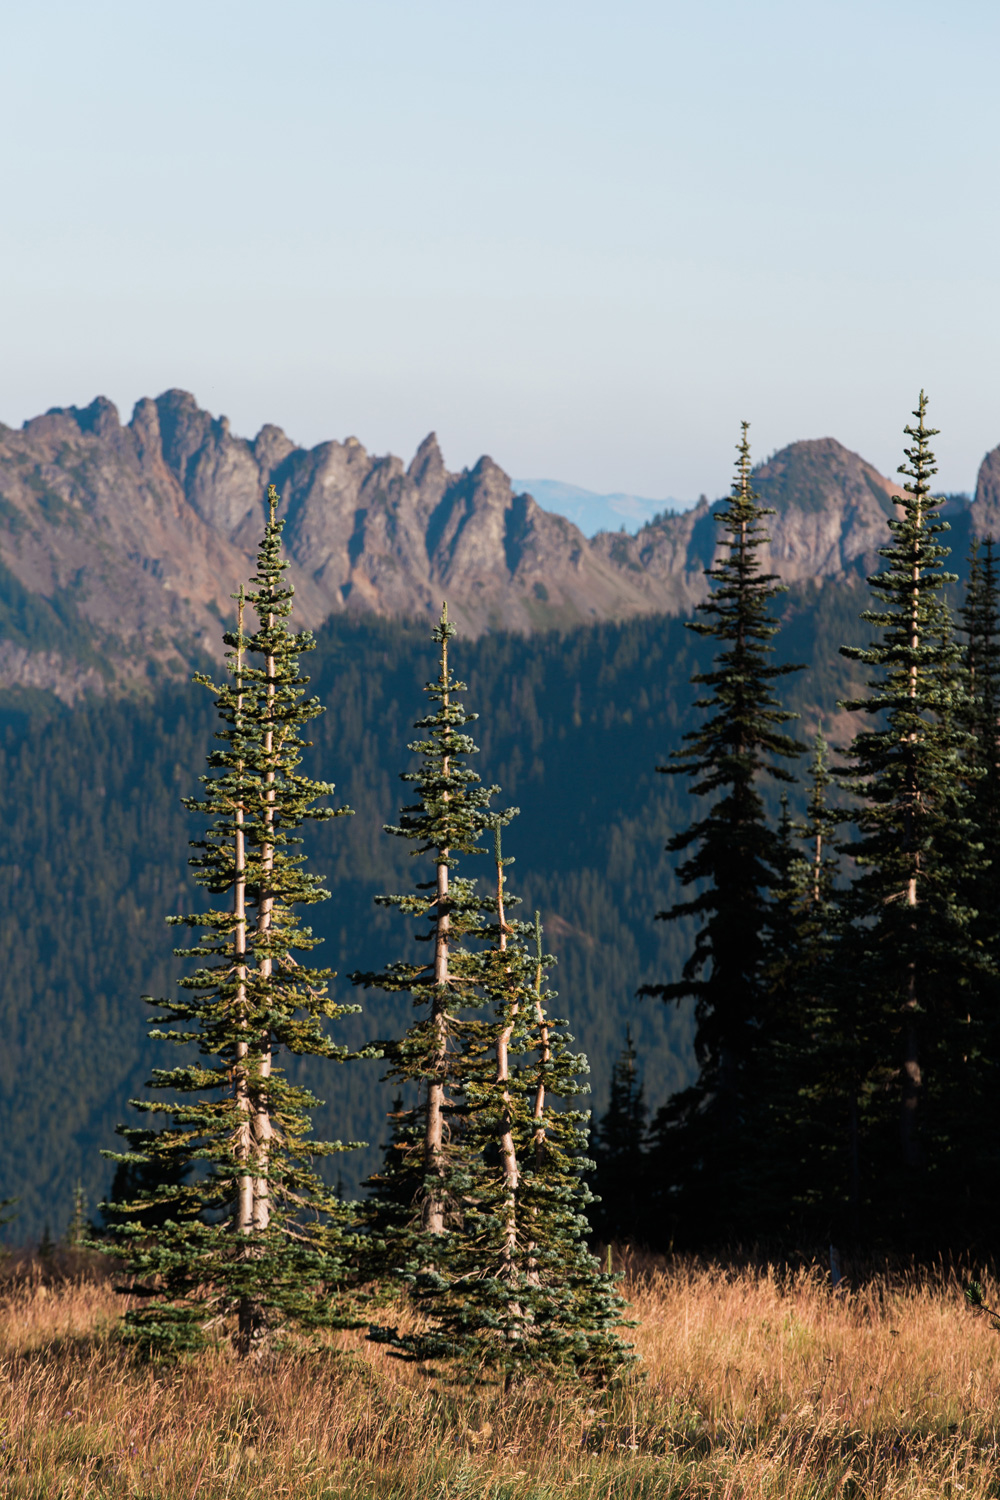 CindyGiovagnoli_Redwoods_CraterLake_MountRainier_PNW_National_Park_trees_camp_road_trip-009.jpg